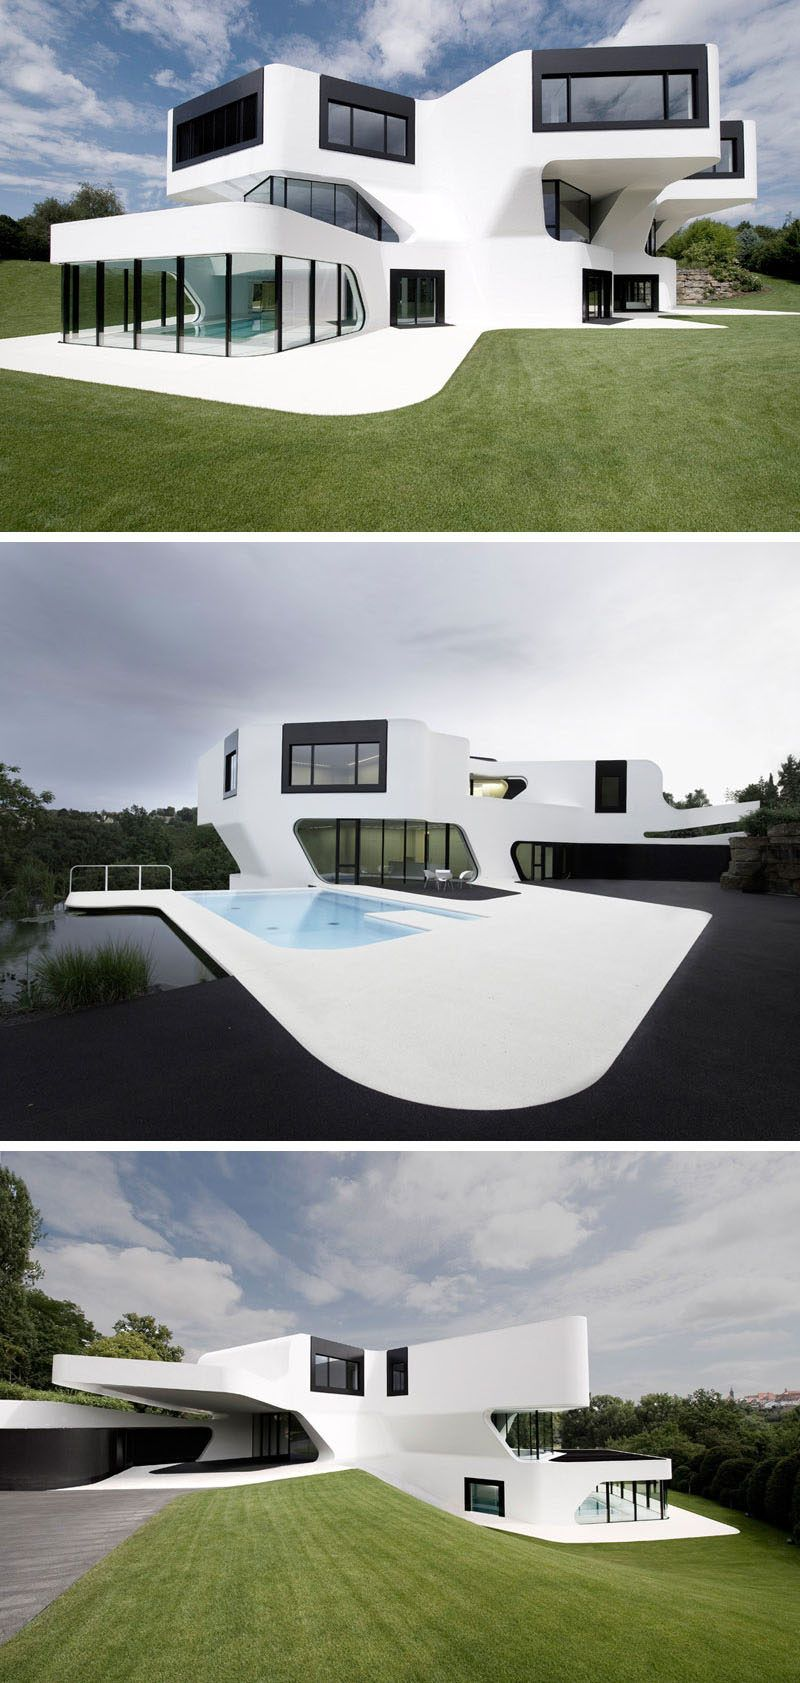 House Exterior Colors 11 Modern White Houses From Around The World Exterior House Colors Expensive Houses White Exterior Houses